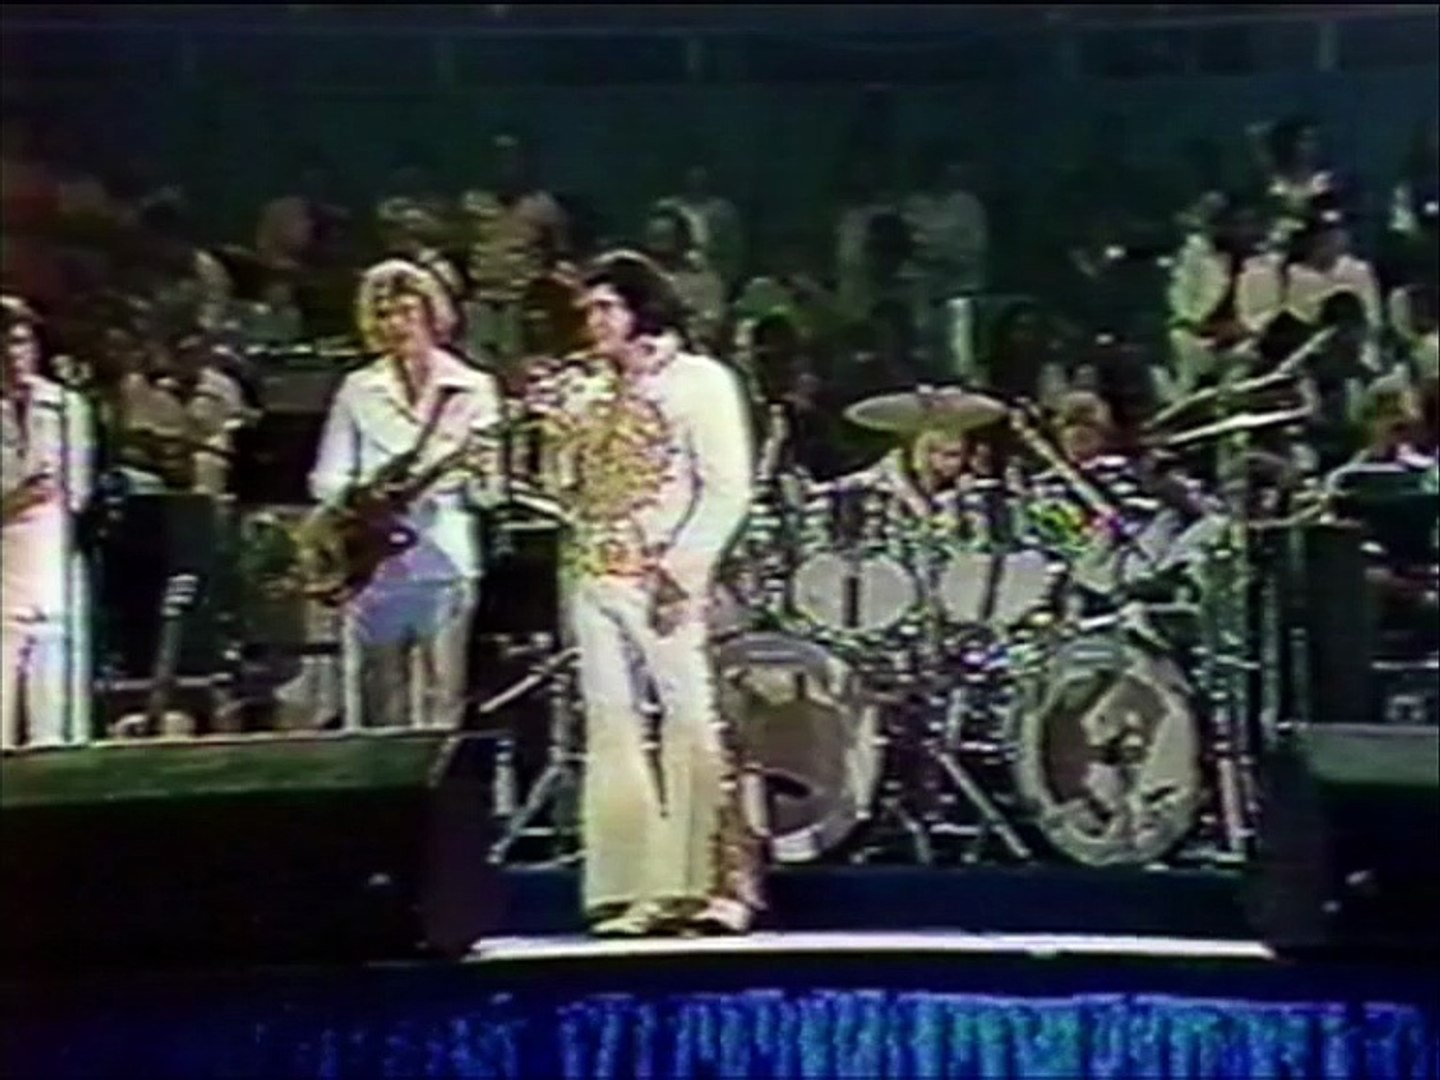 Elvis Presley - And I Love You So (19/06/77) with video footage and new audio